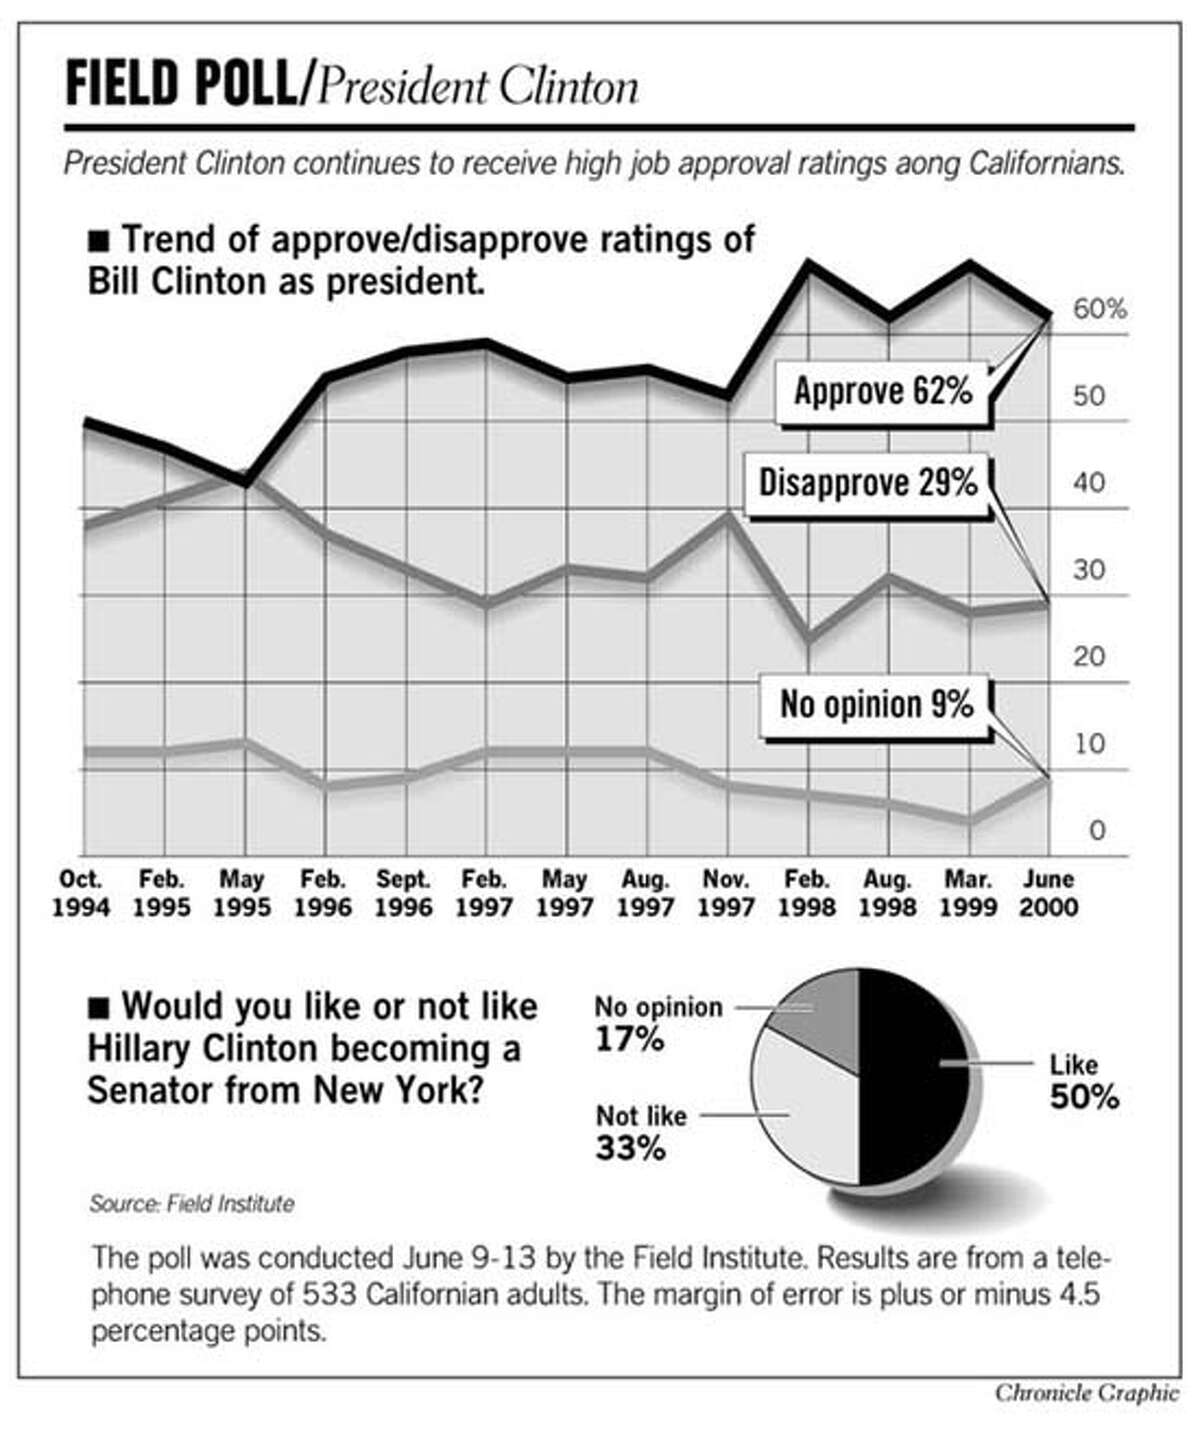 Field Poll - President Clinton. Chronicle Graphic